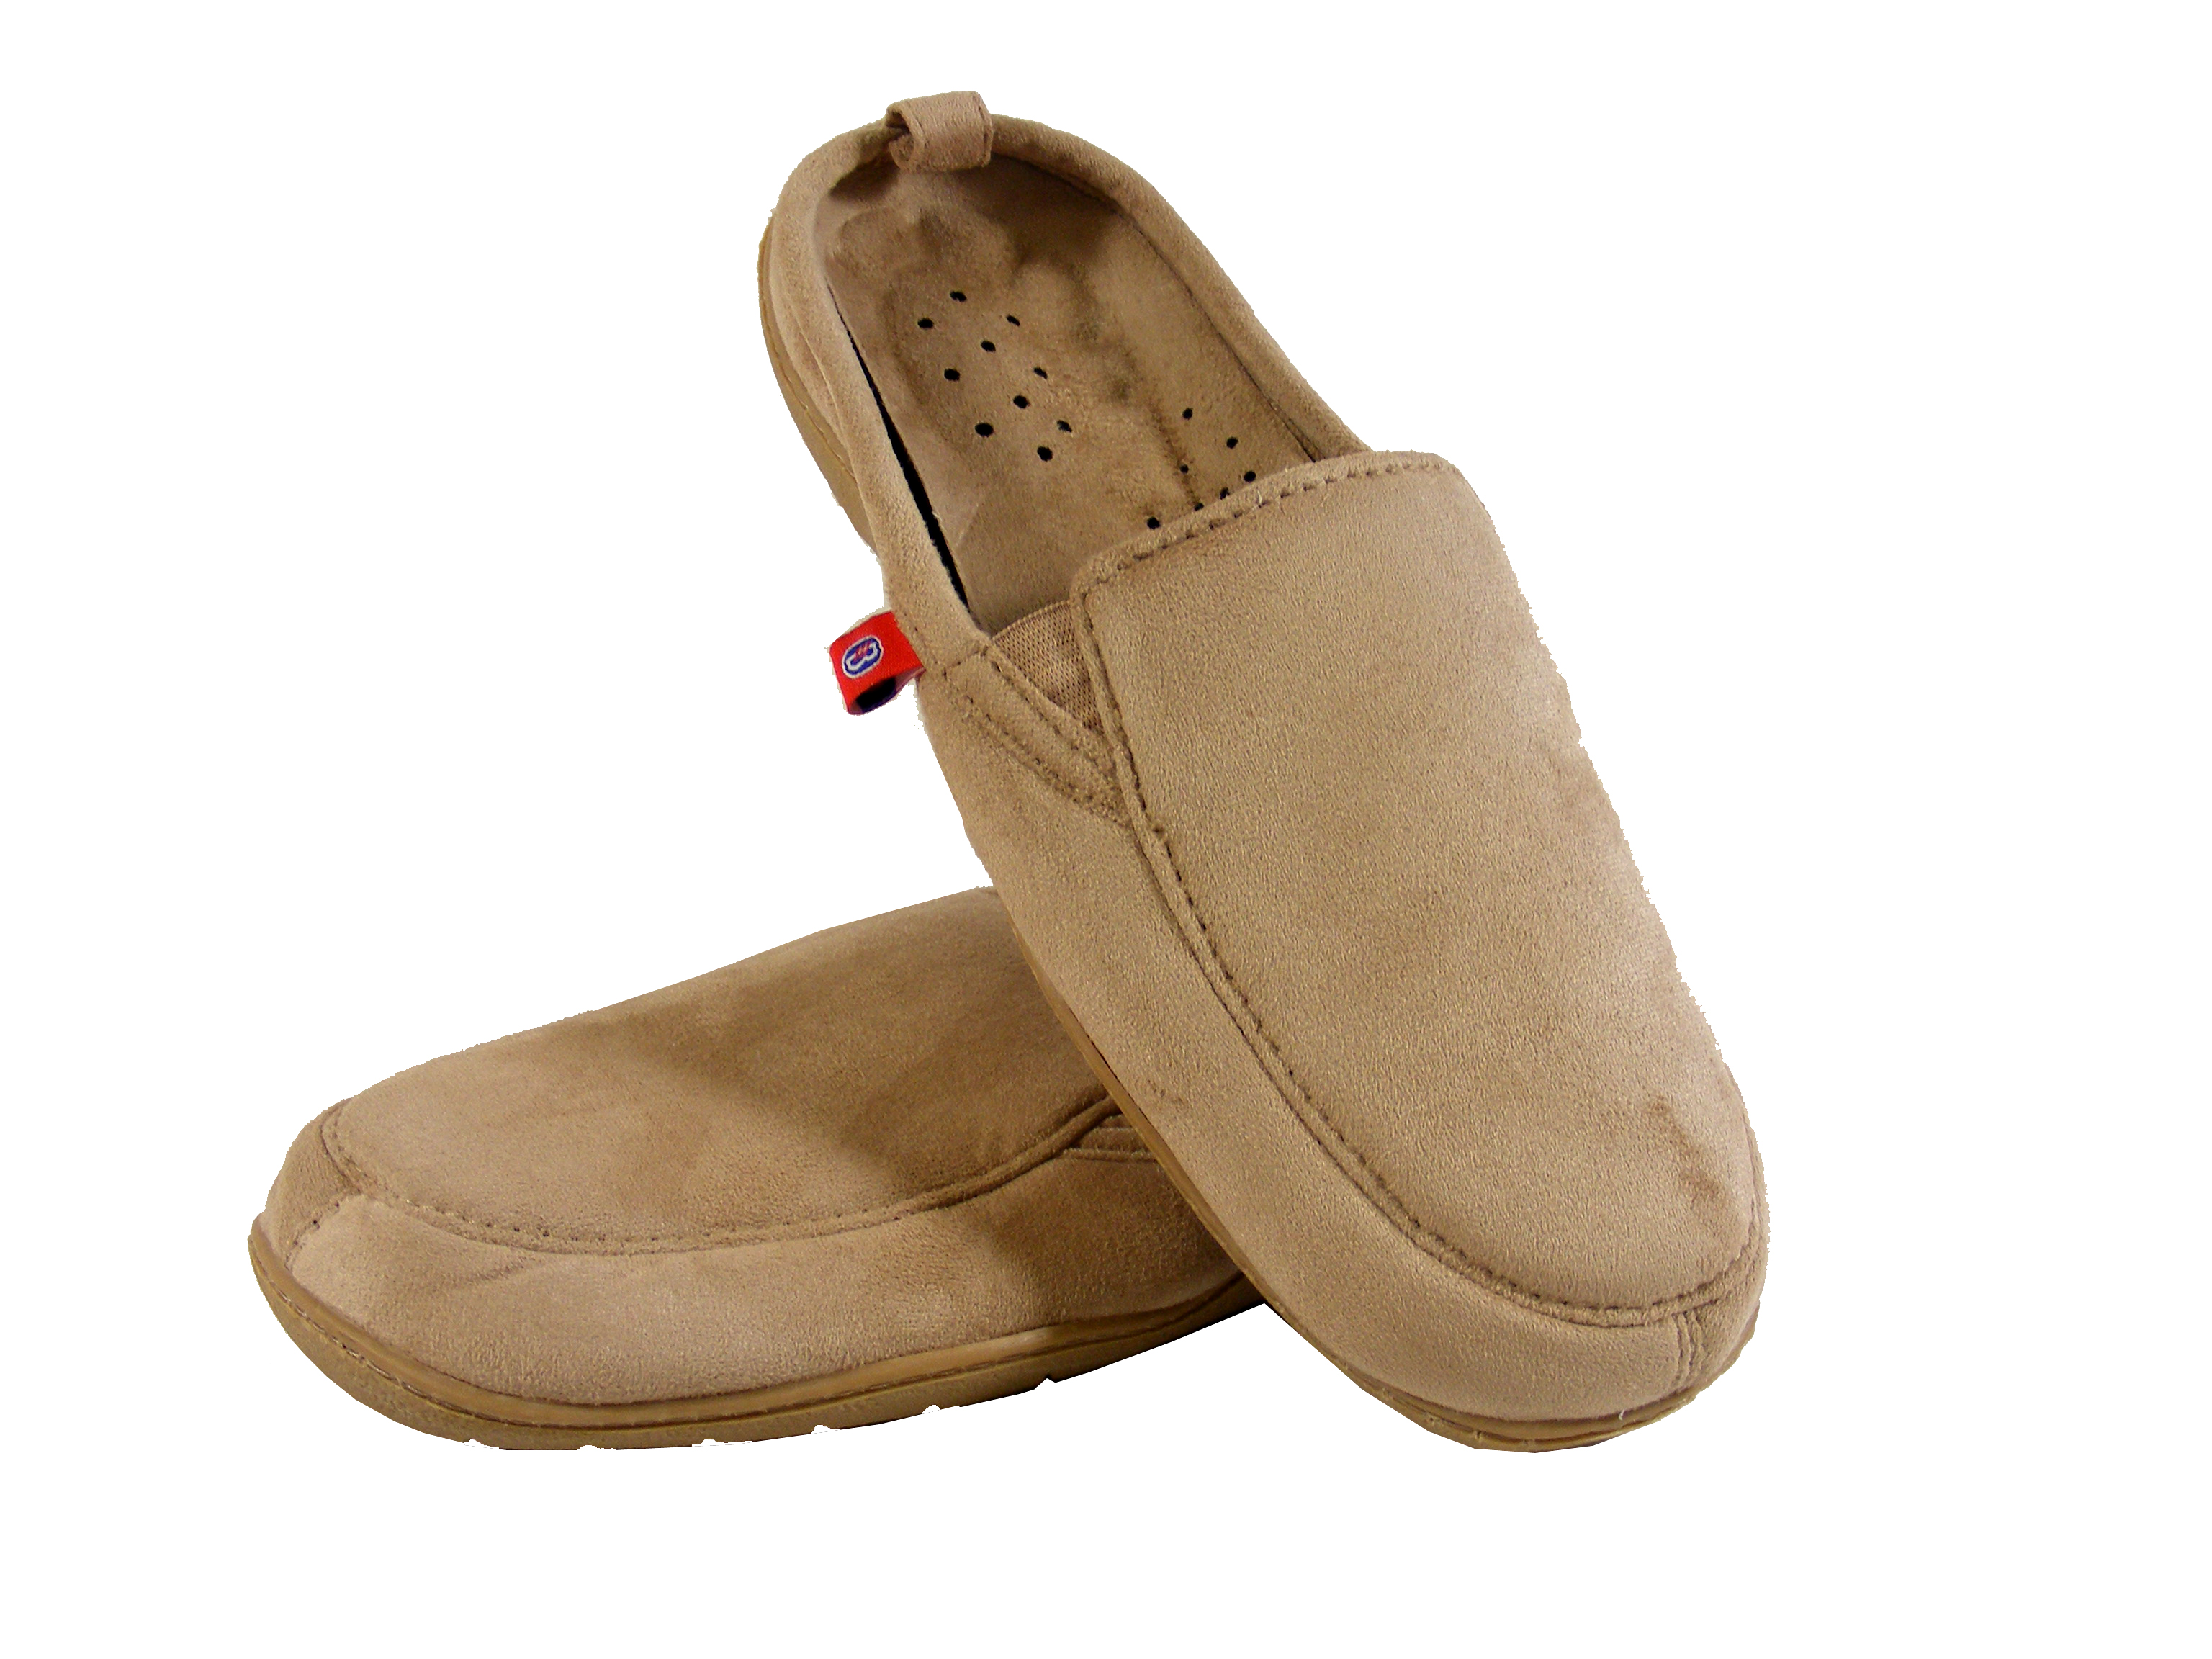 Men & Women's Vionic Orthaheel Slippers | Orthotic ShopFree Day Shipping · Free Returns · Free Exchanges · Norton Guarantee.